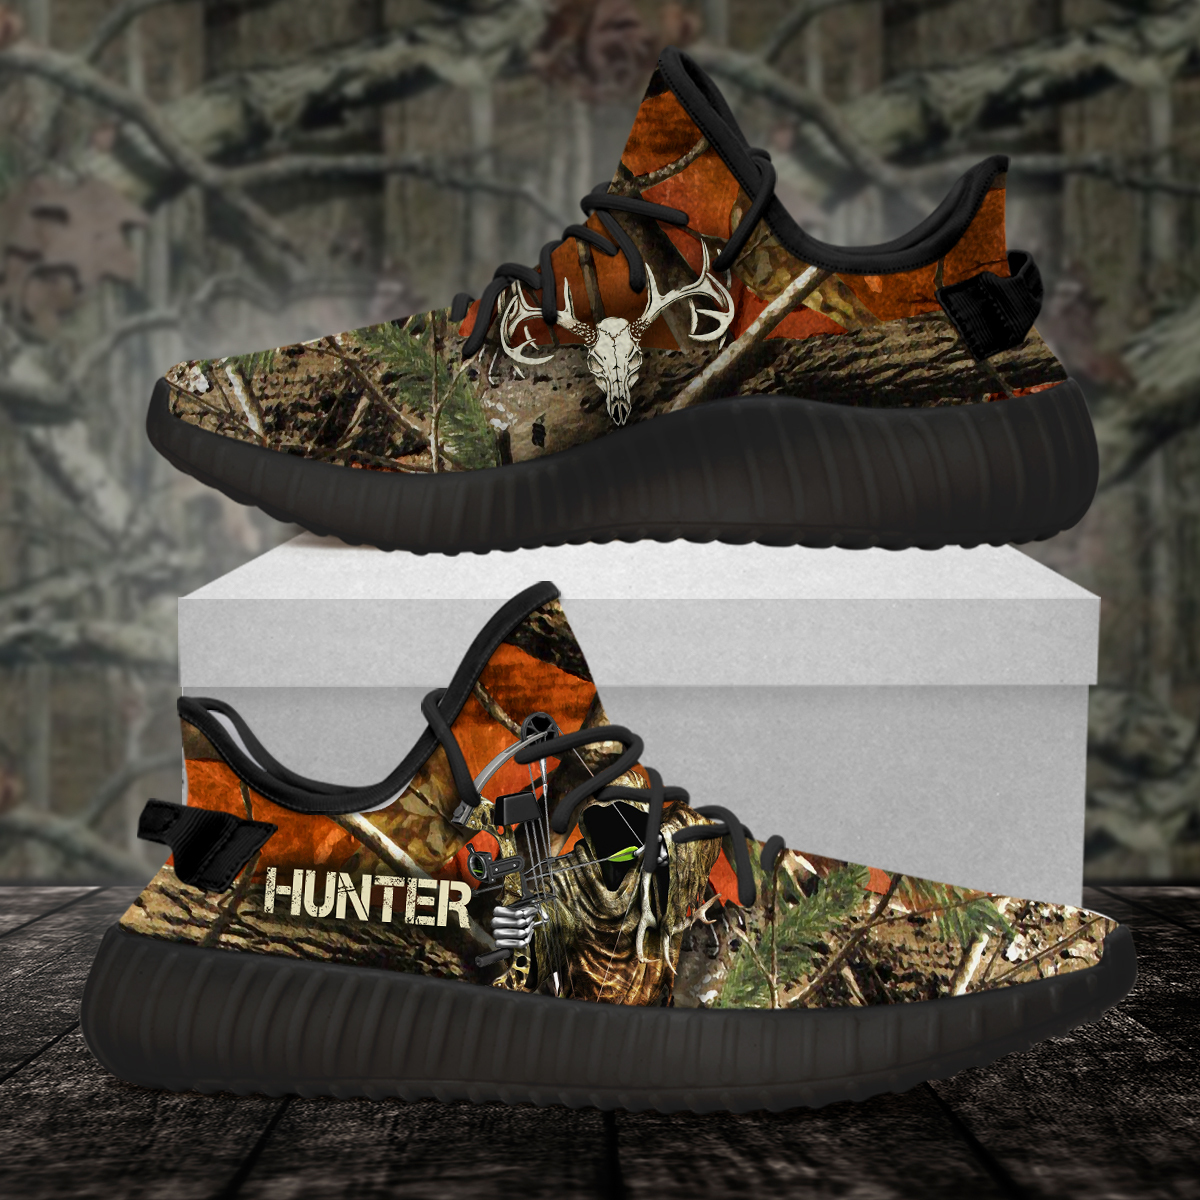 Deer hunting pattern yeezy shoes 2